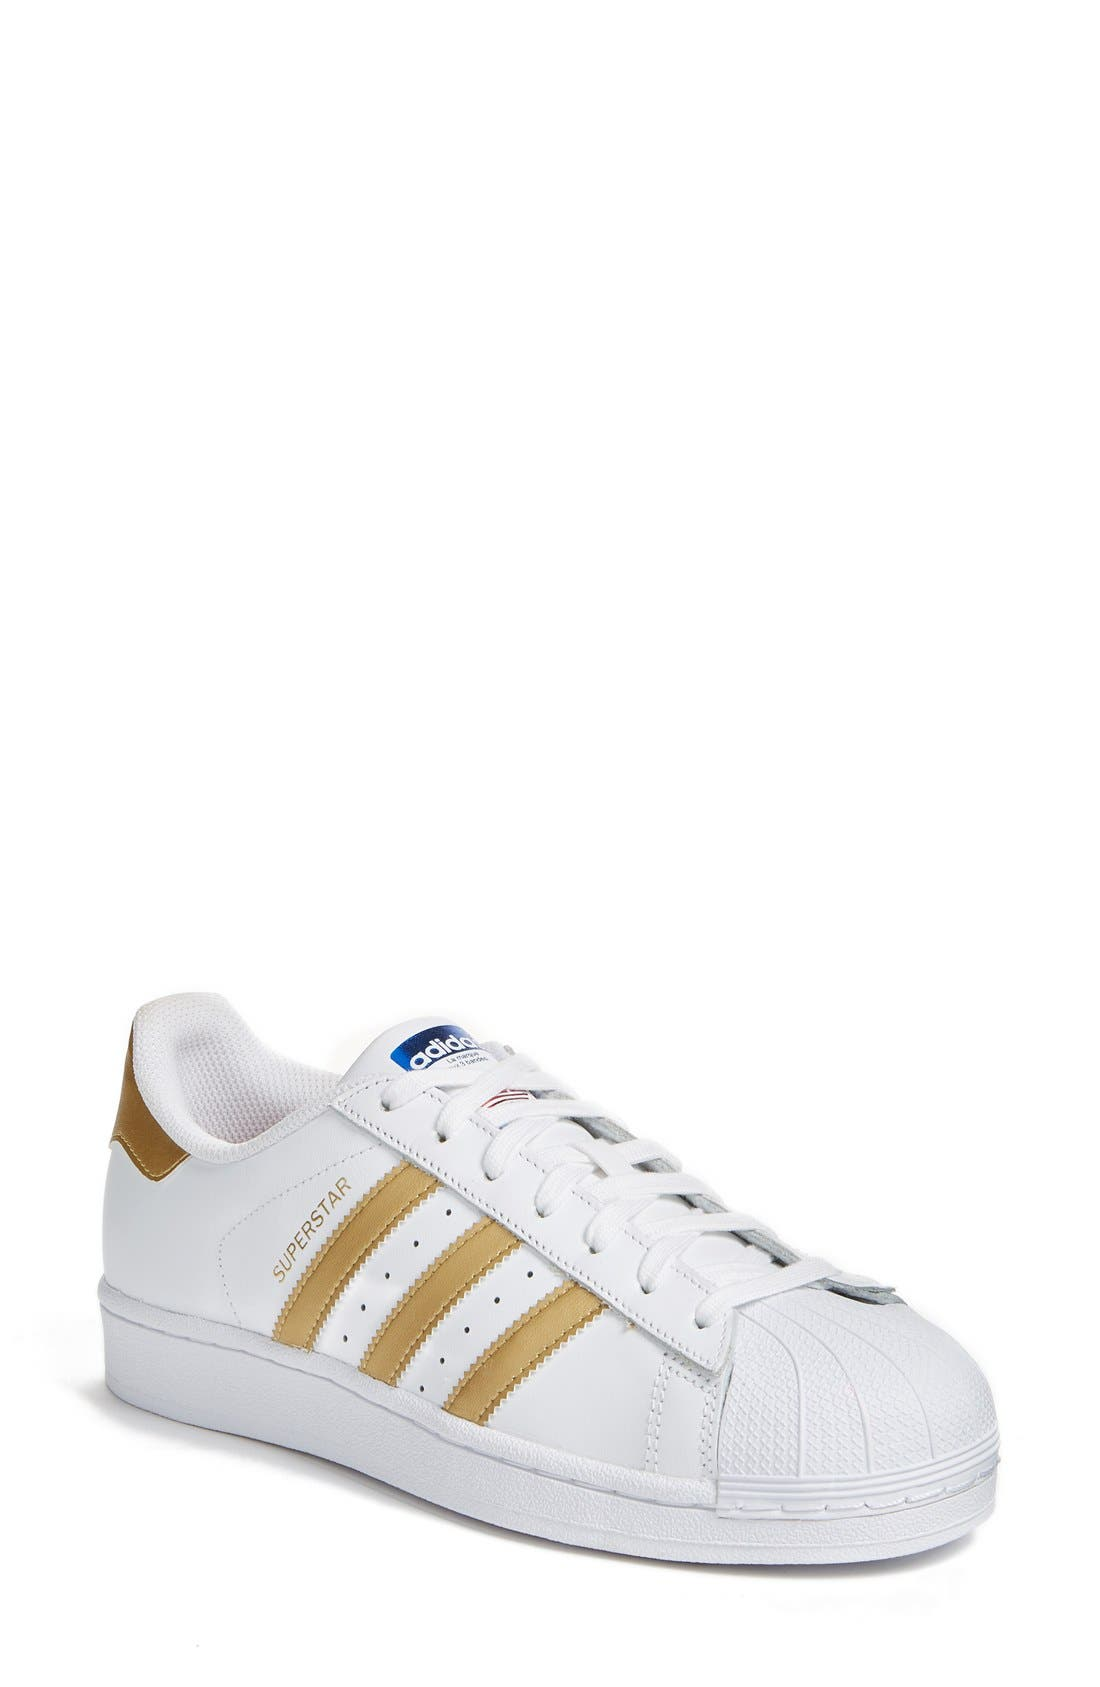 Main Image - adidas Superstar Sneaker. Color: White/ Gold